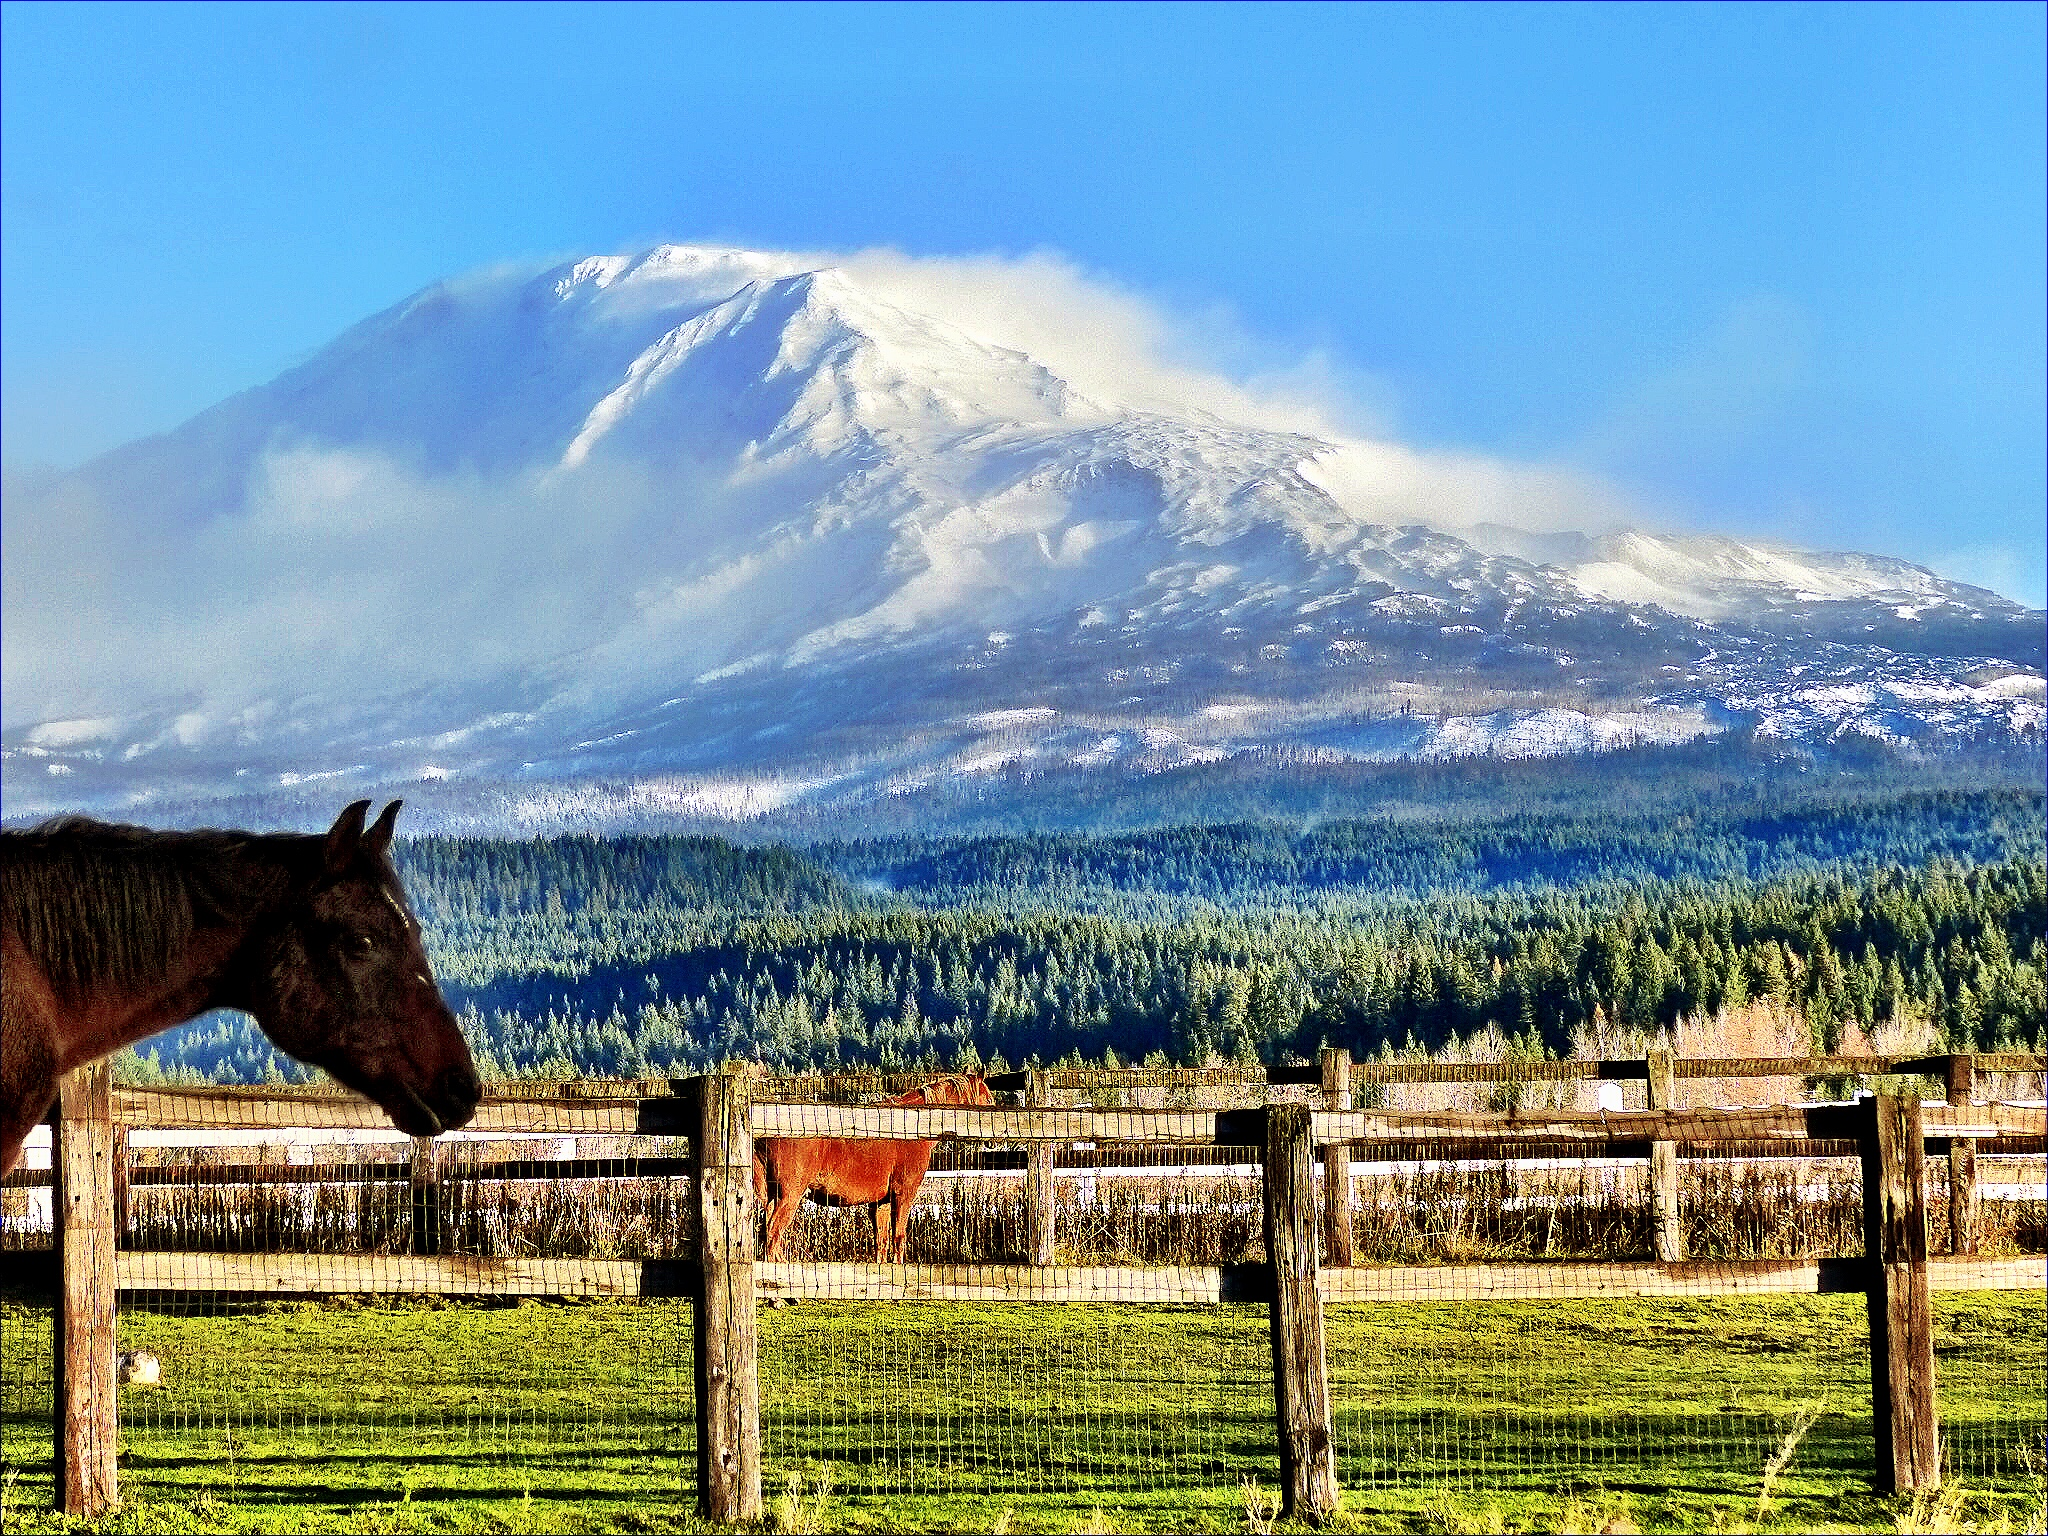 Mount Adams from a ranch in TL